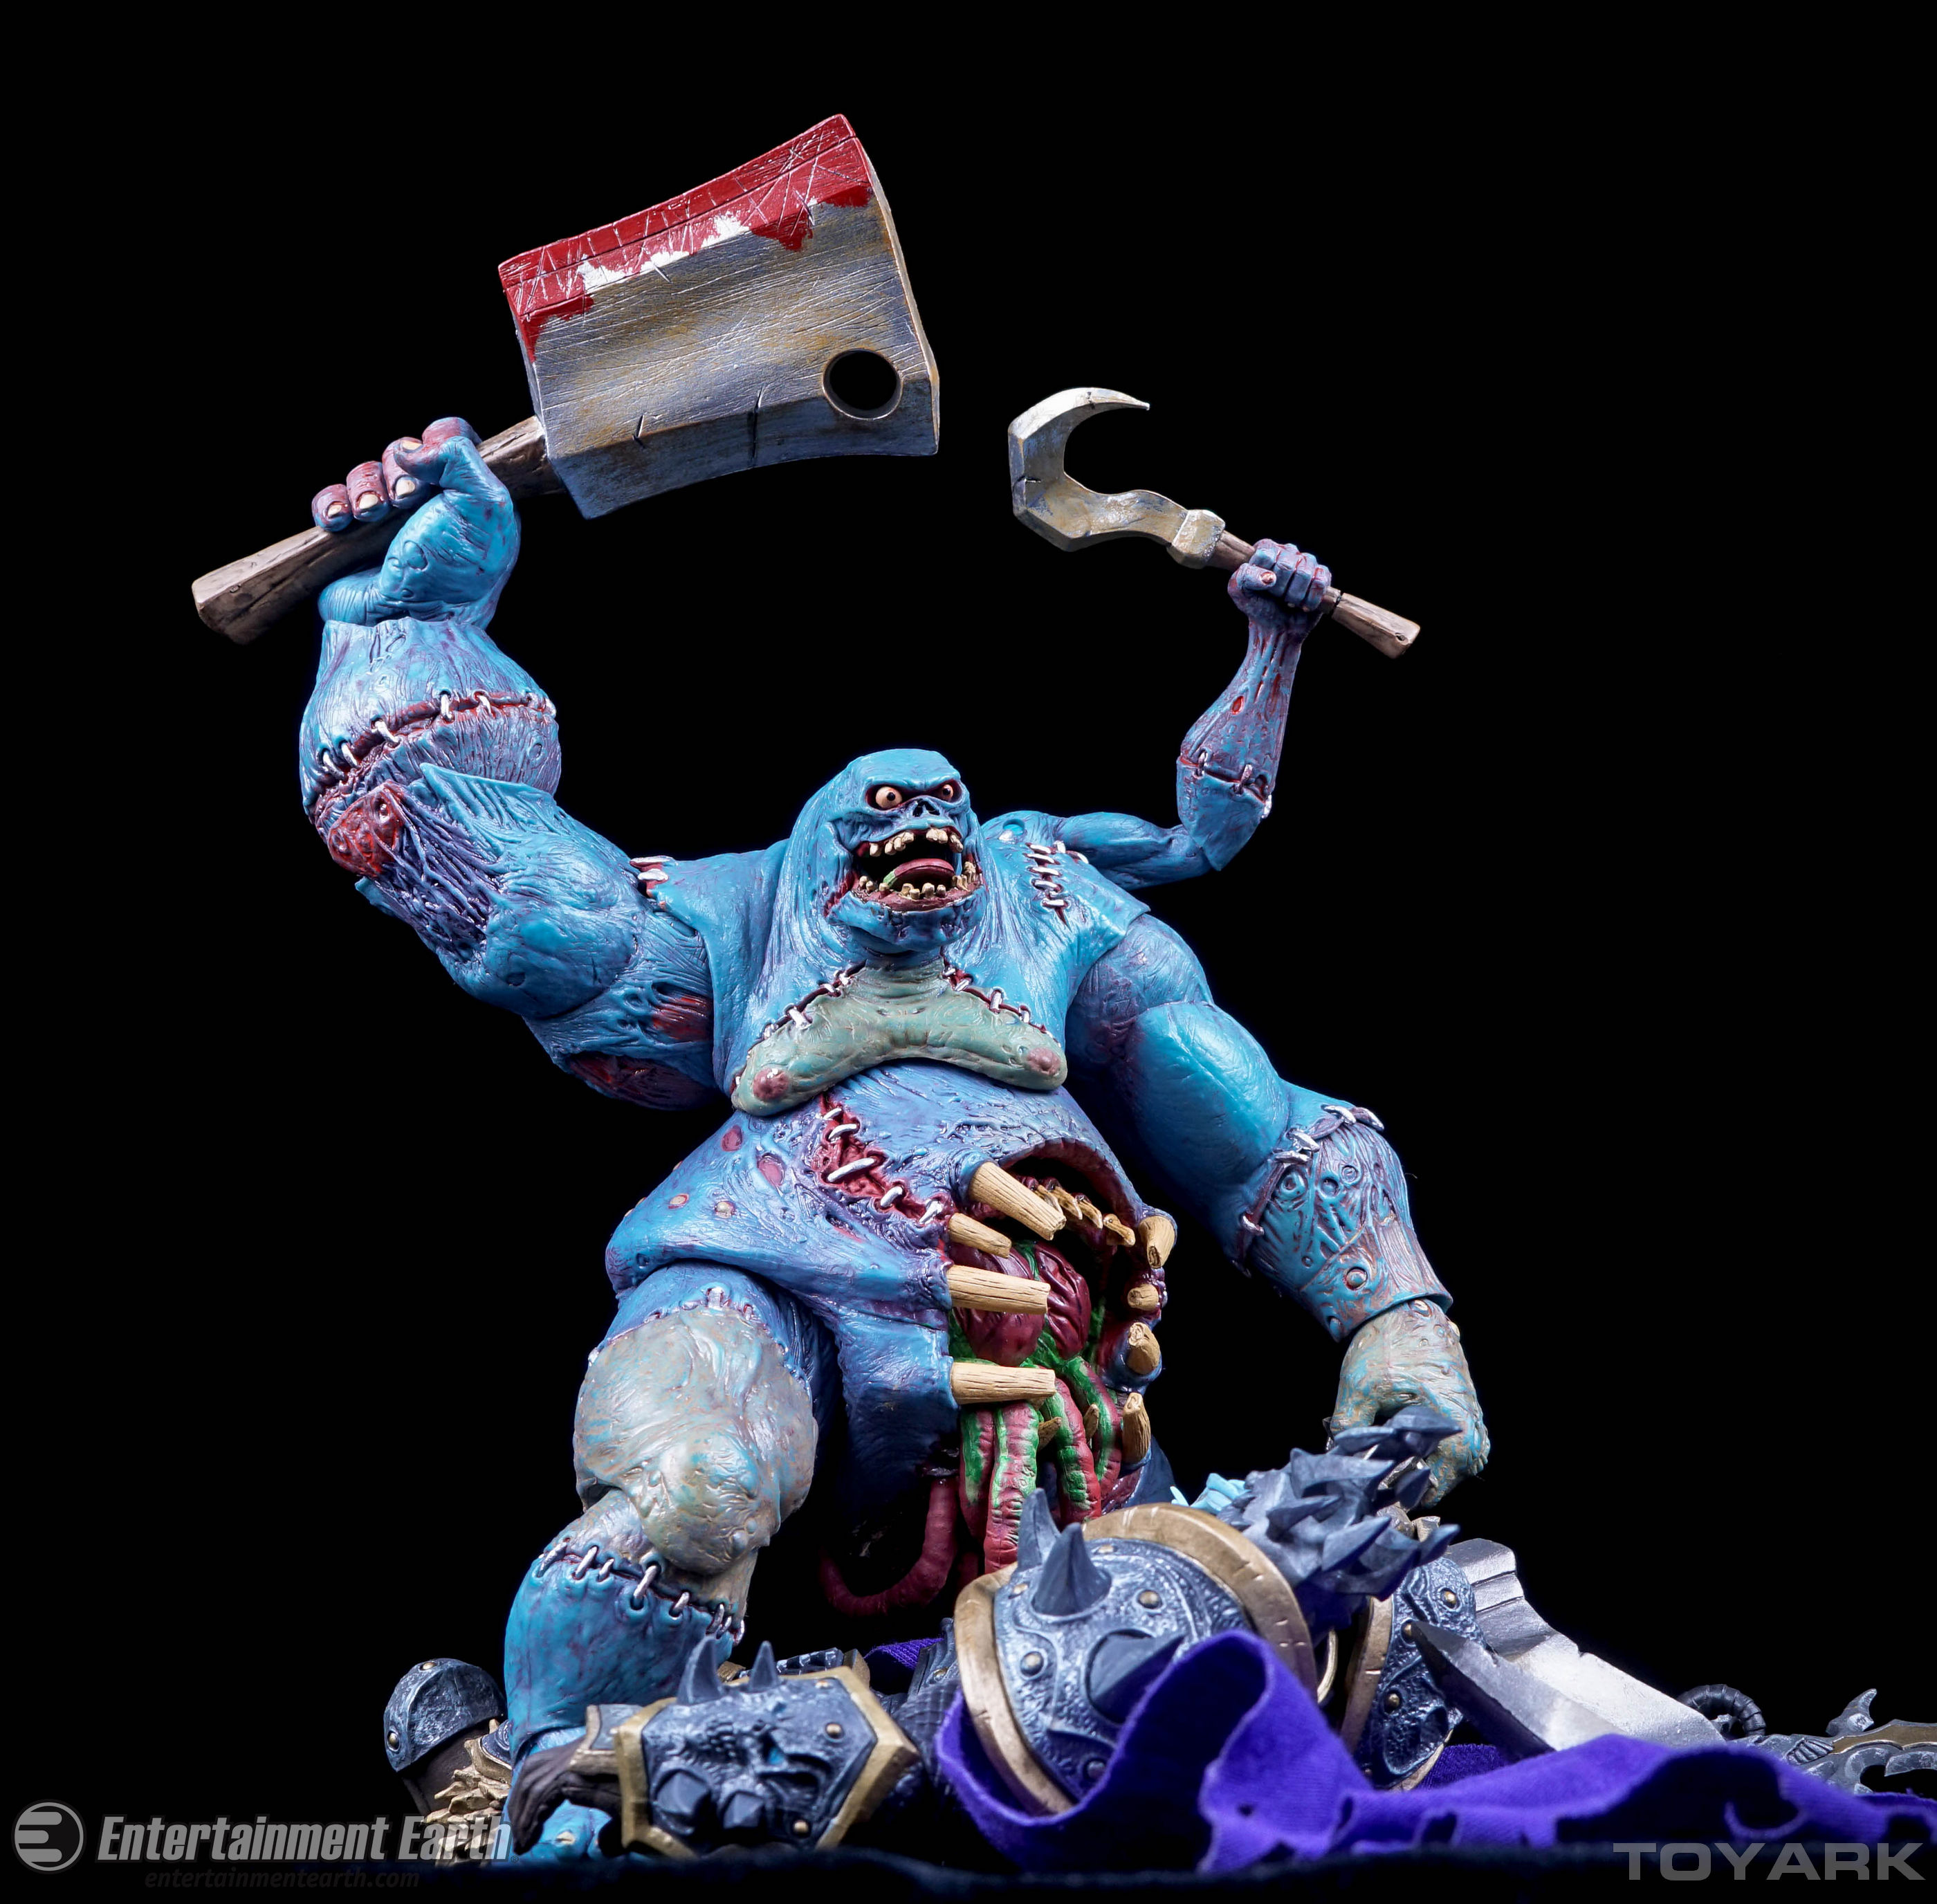 http://news.toyark.com/wp-content/uploads/sites/4/2016/01/NECA-HOTS-Stitches-055.jpg